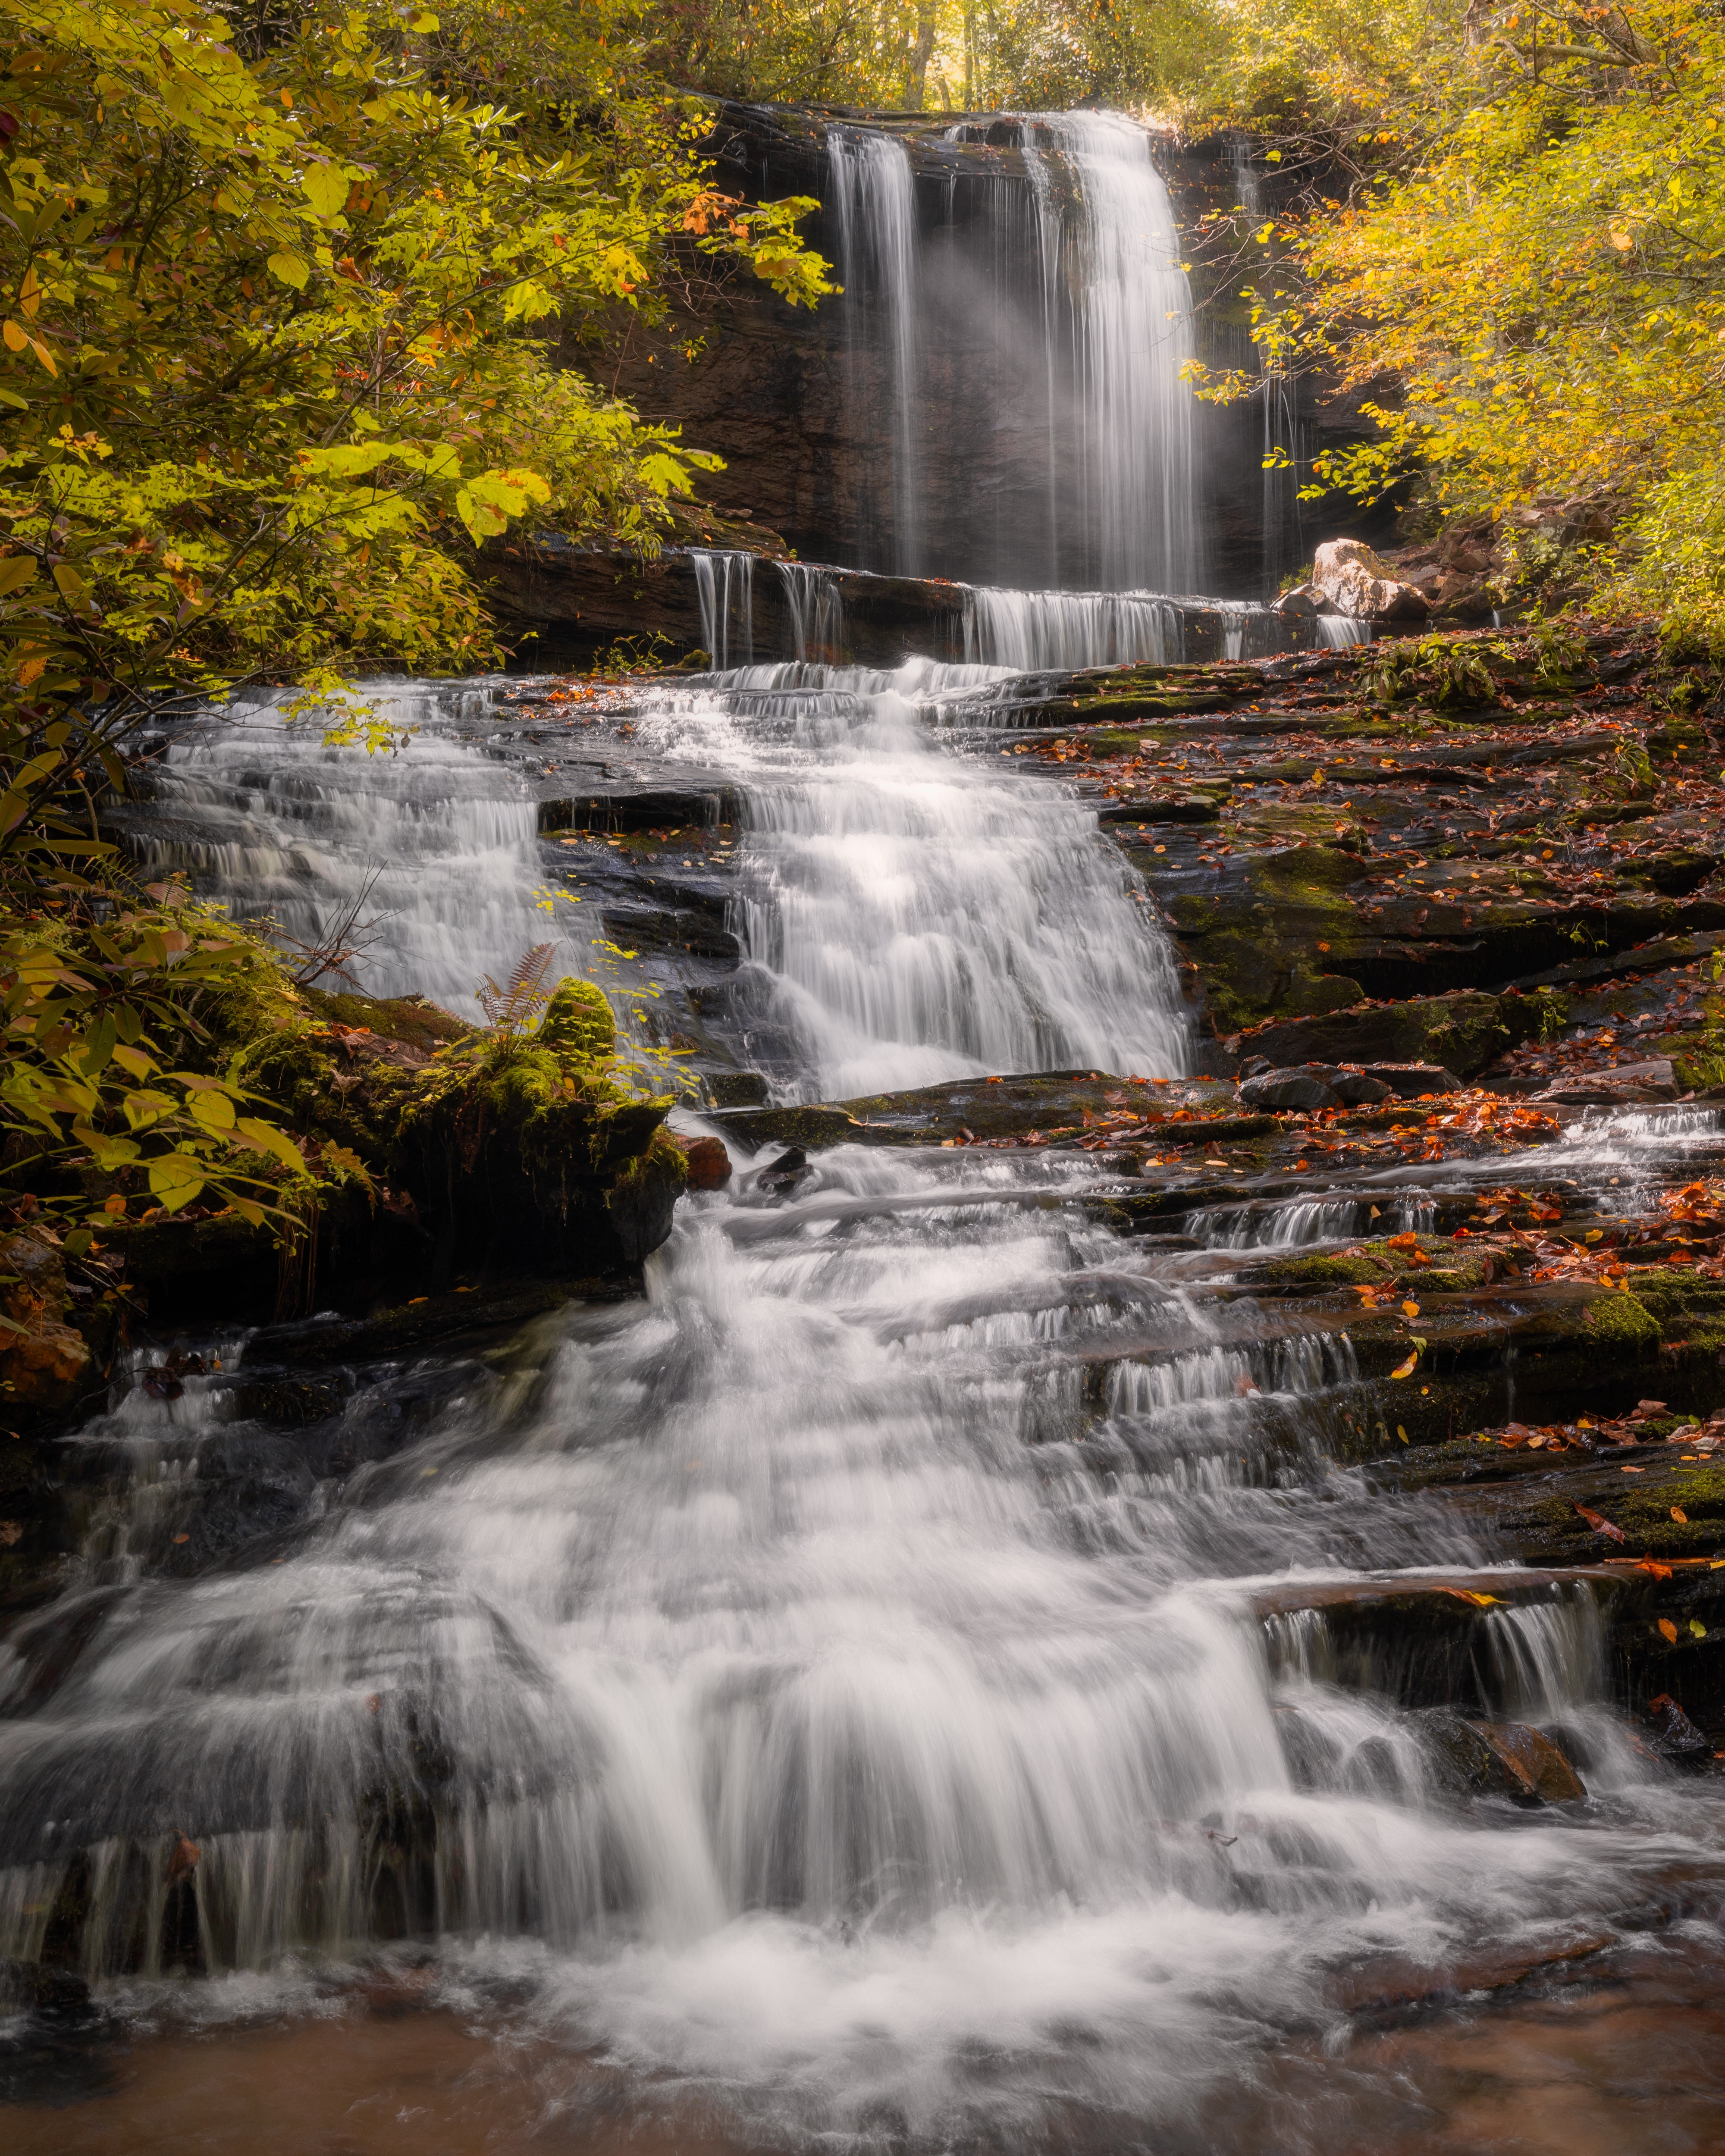 Waterfall cascading over rock shelves with fall foliage lining the side of the stream.